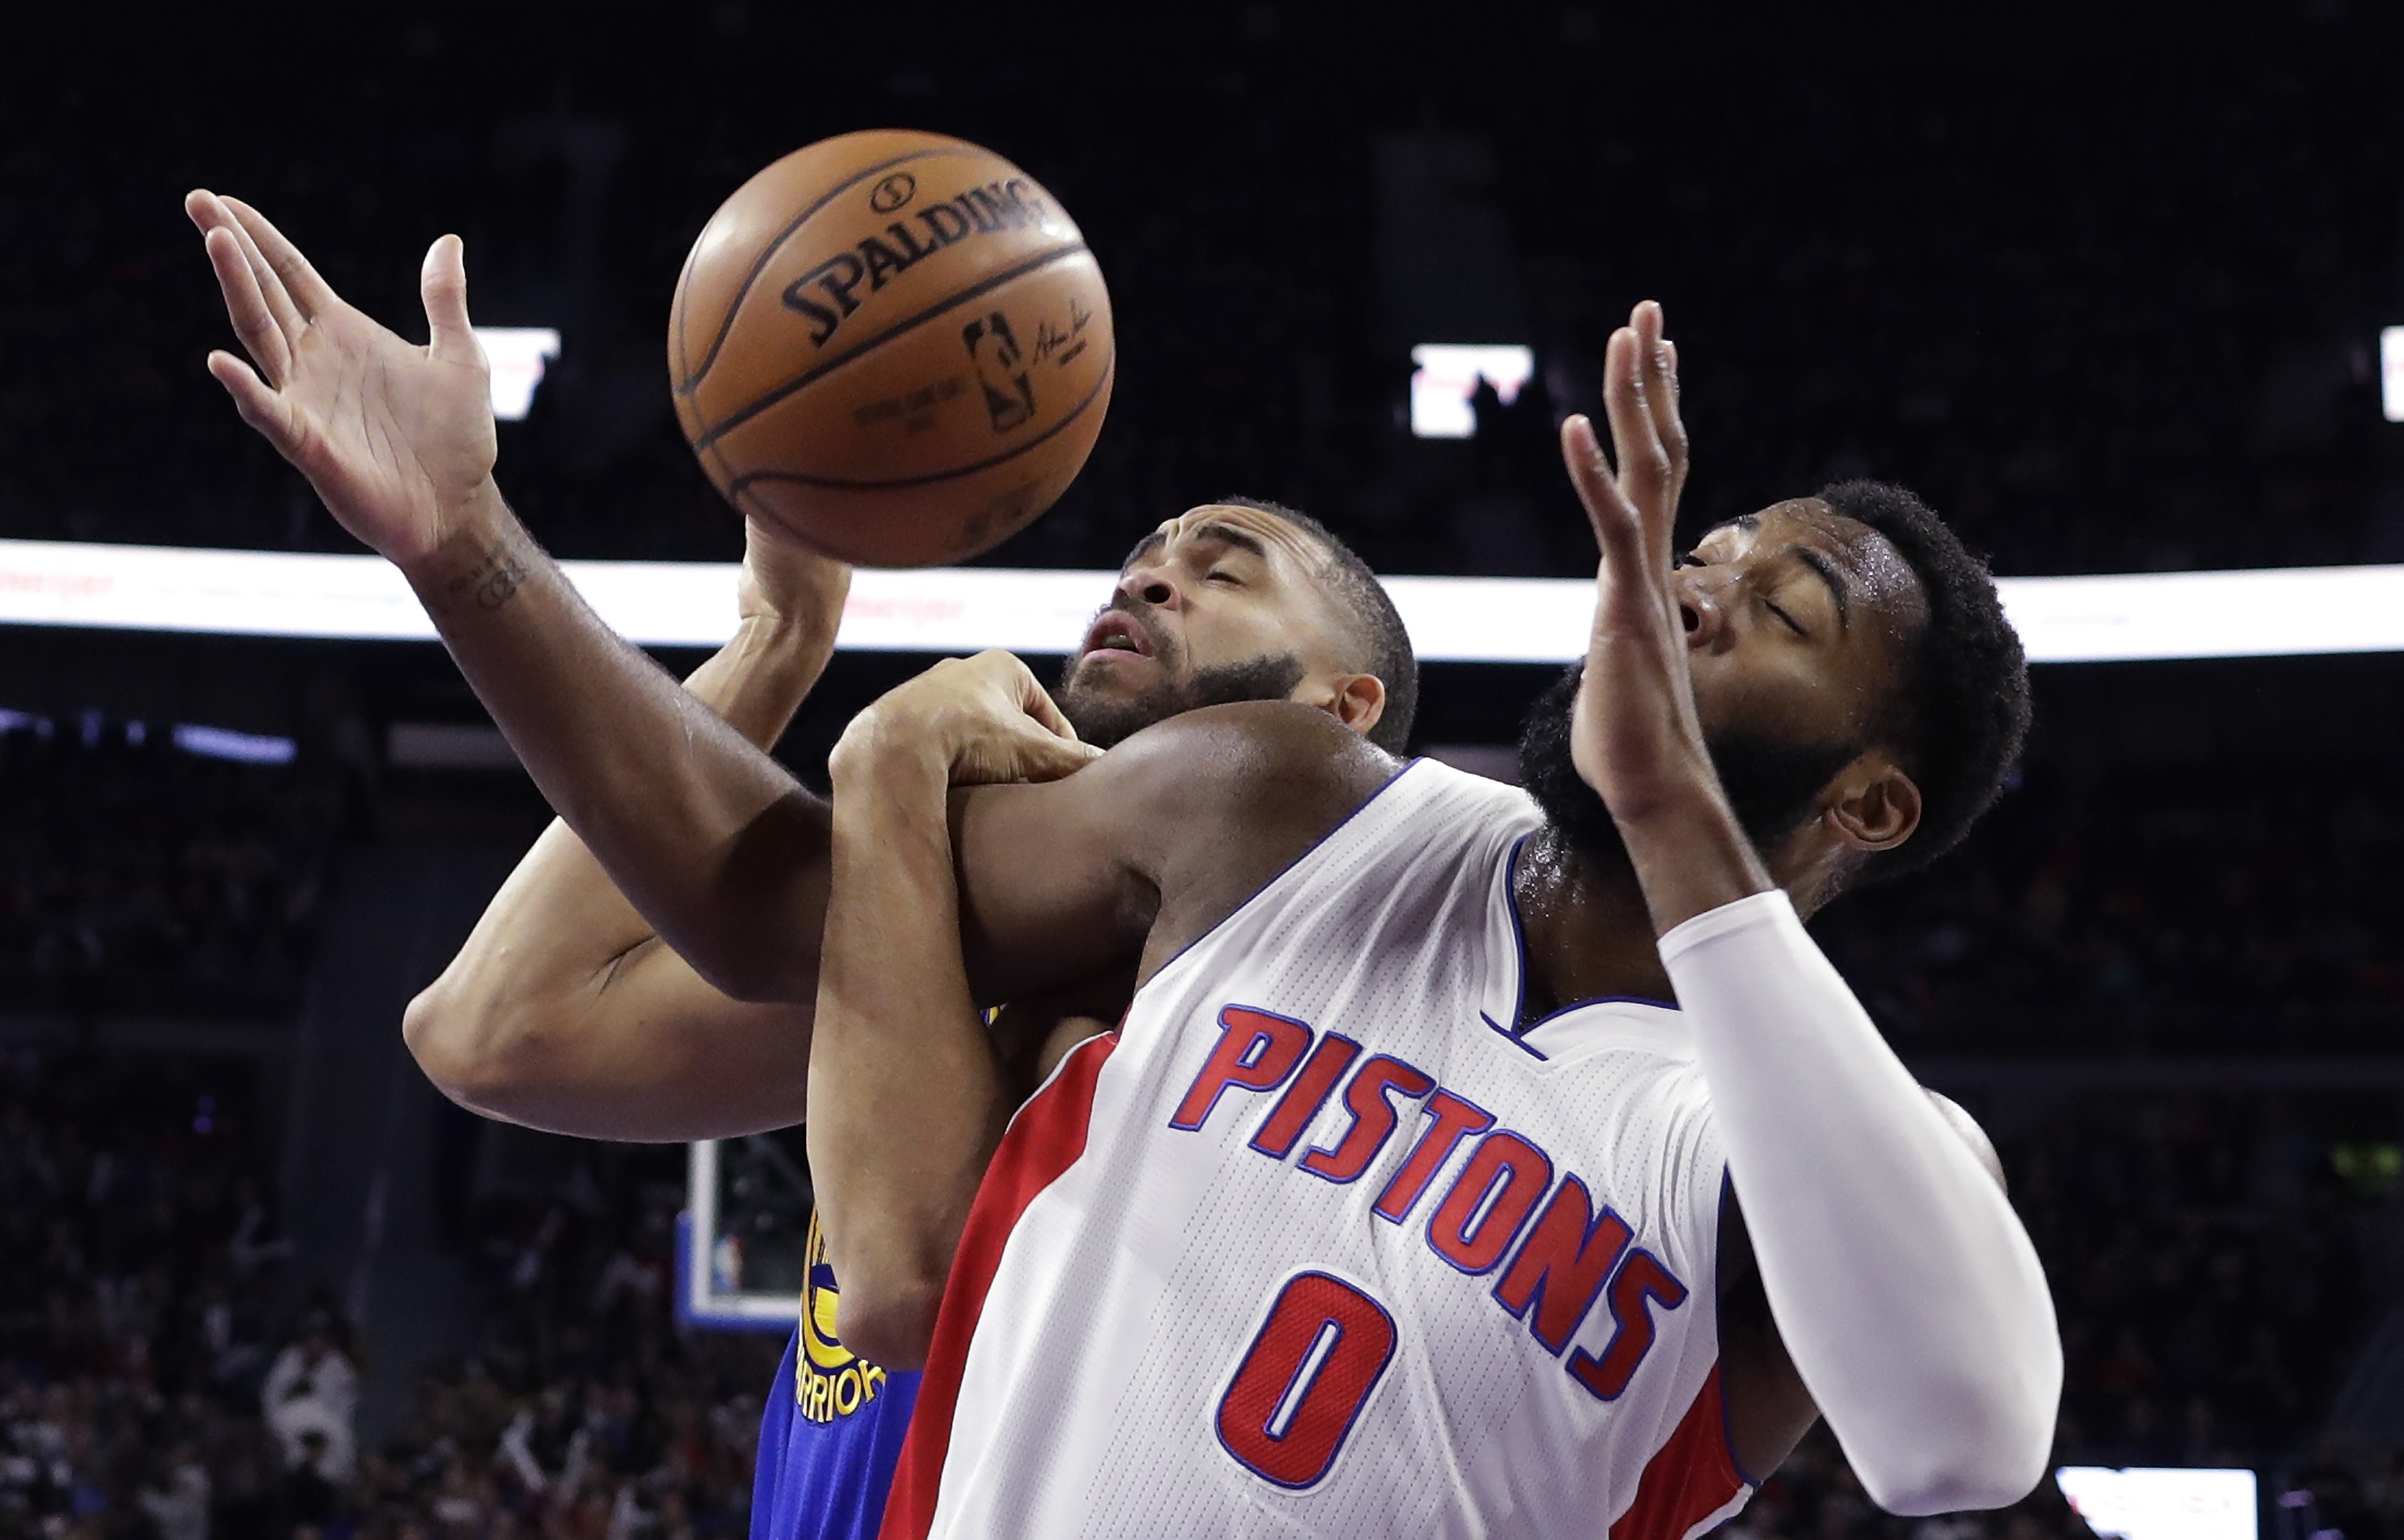 (AP) — The Golden State Warriors gave the Detroit Pistons a shot at an  upset, turning the ball over more than they had in any game this season.